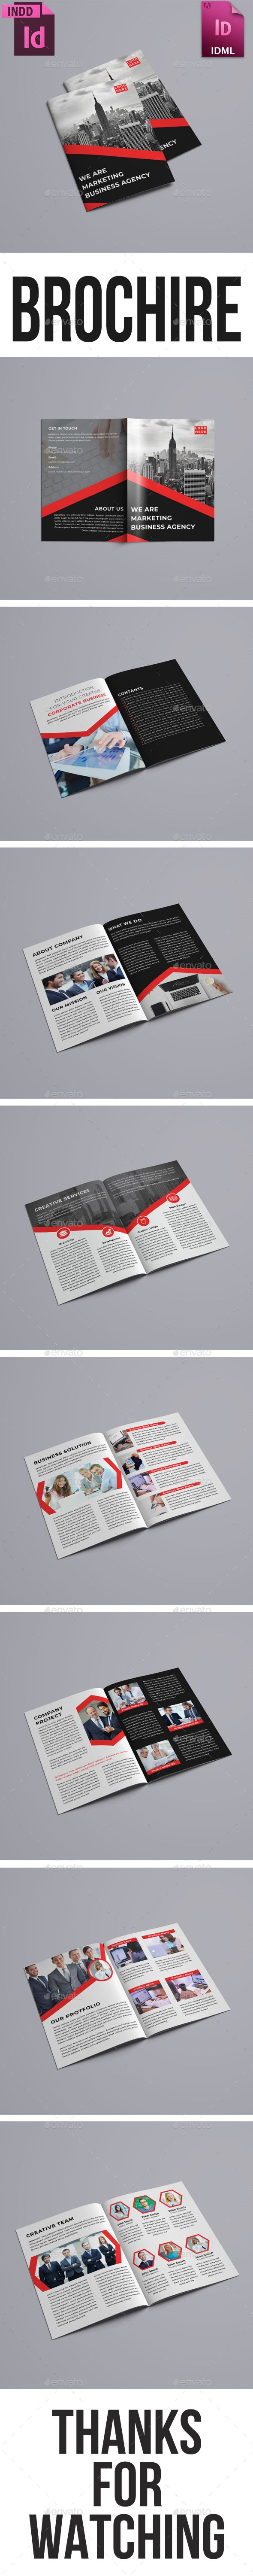 Brochure #modern brochure #business brochure  • Download here → https://graphicriver.net/item/brochure/21190589?ref=pxcr